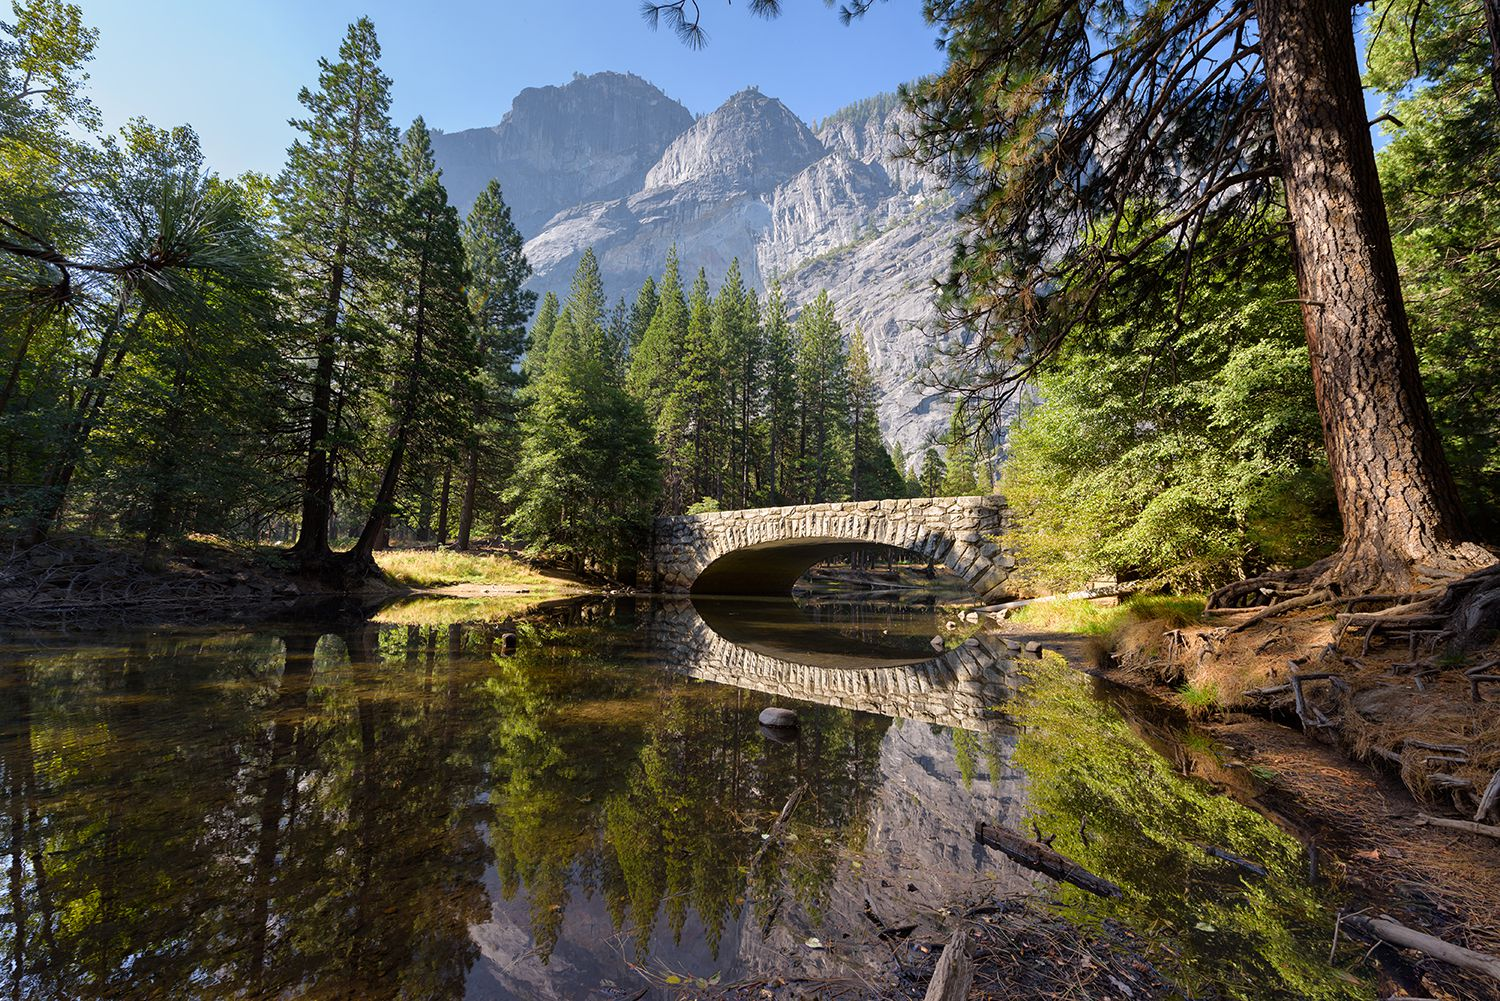 The Weather And Climate In Yosemite